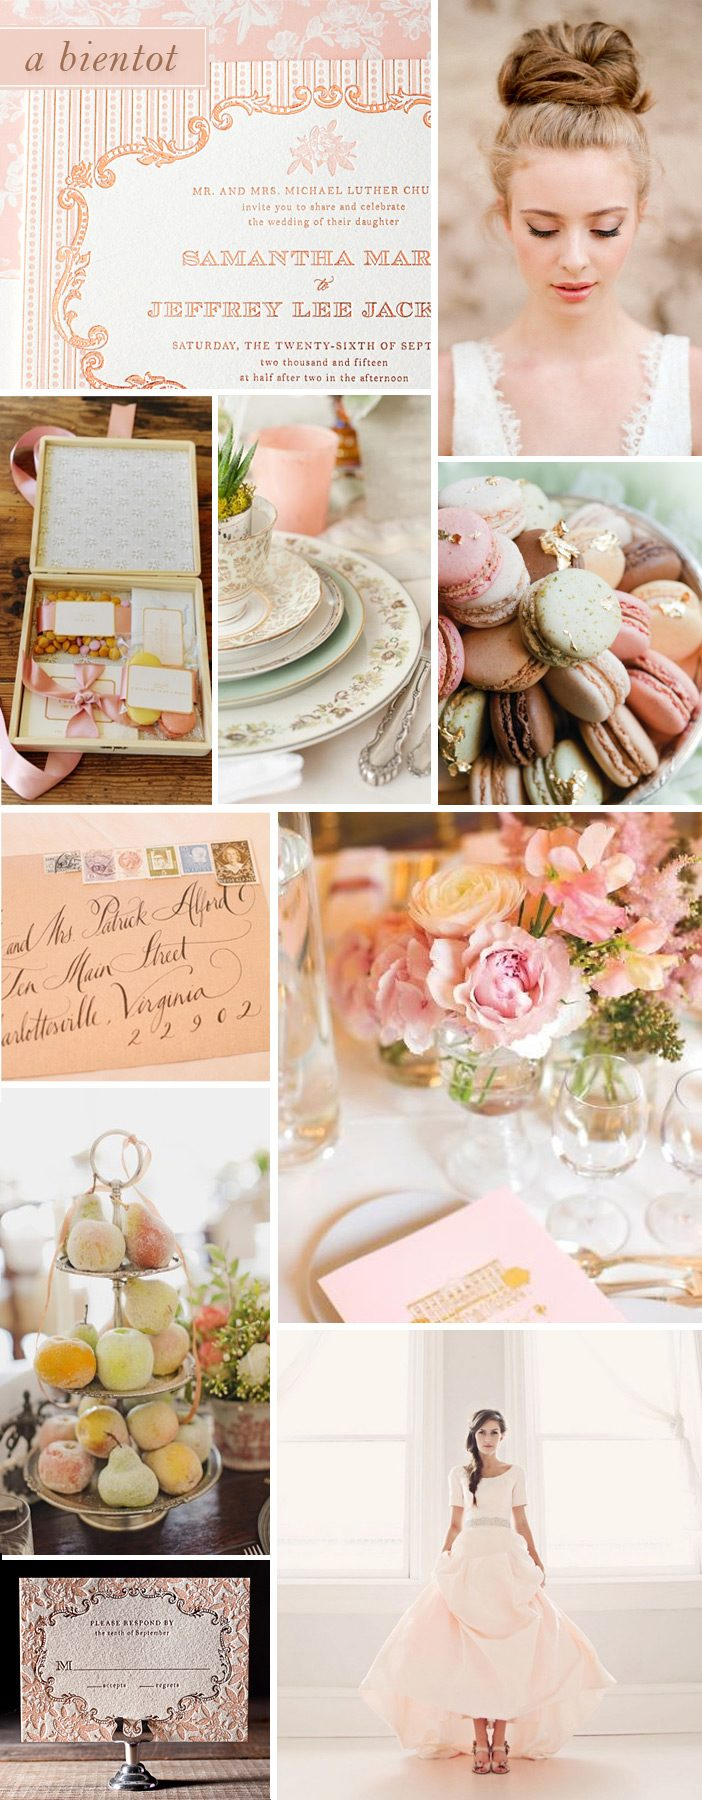 A Bientot is a romantic invitation with Parisian flair, designed by Jessica Tierney for Bella FIgura